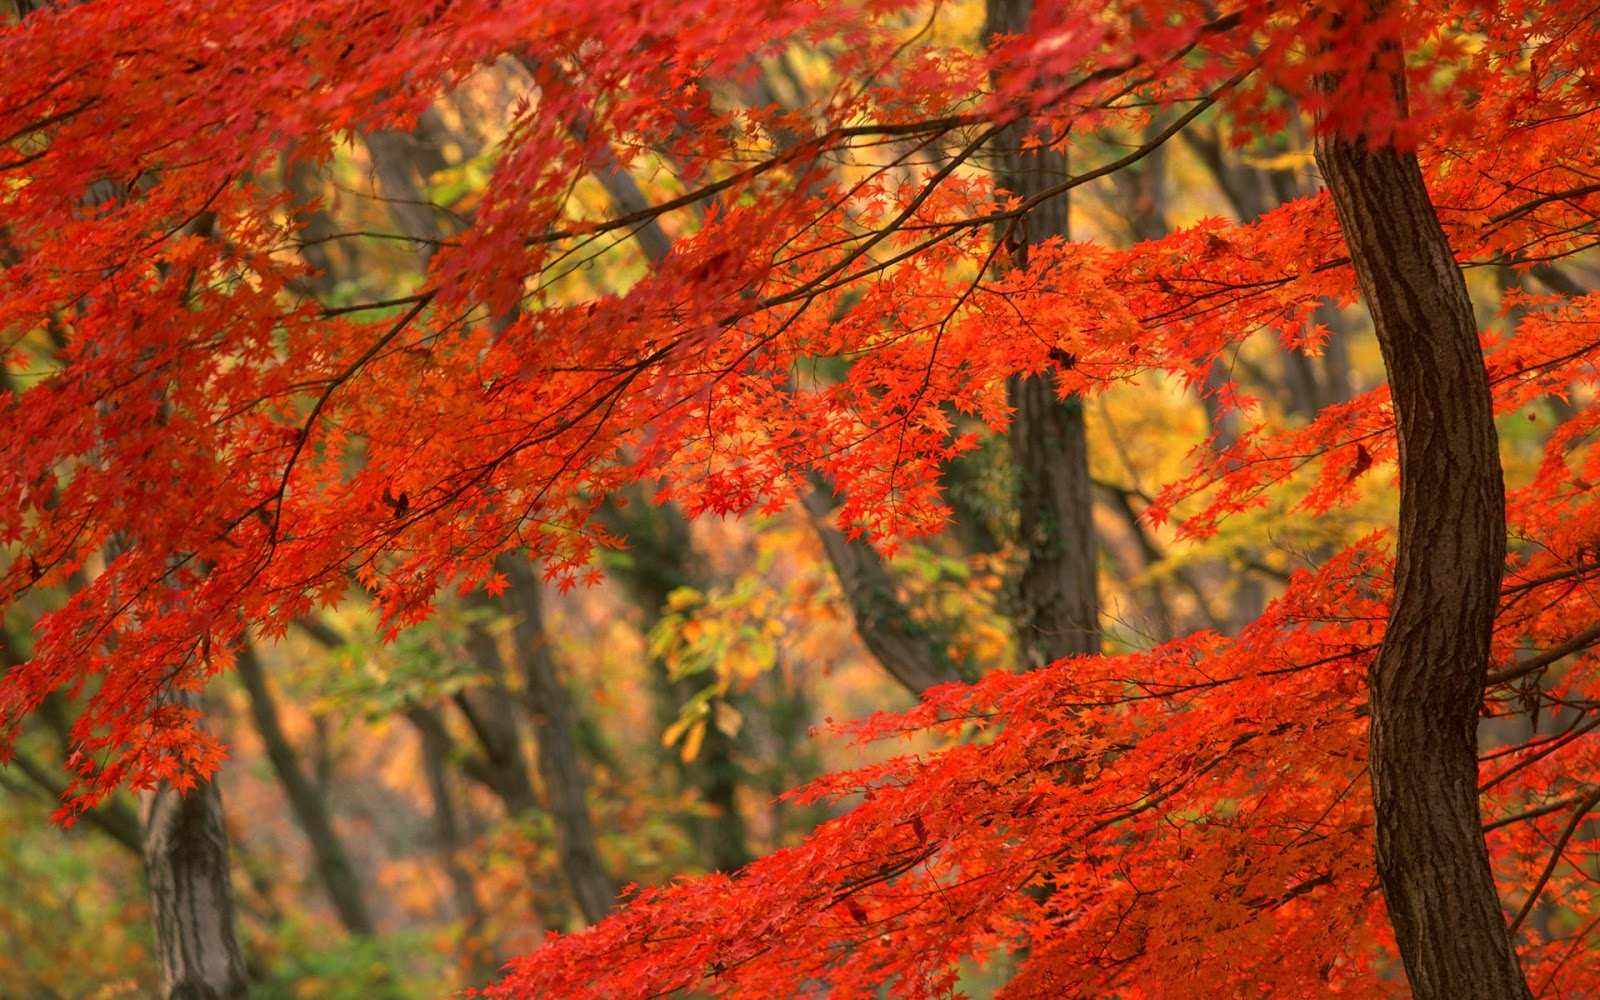 Labels Red Autumn Leaves Photography Hd Wallpapers For: Pemandangan: Autumn Leaves Wallpaper